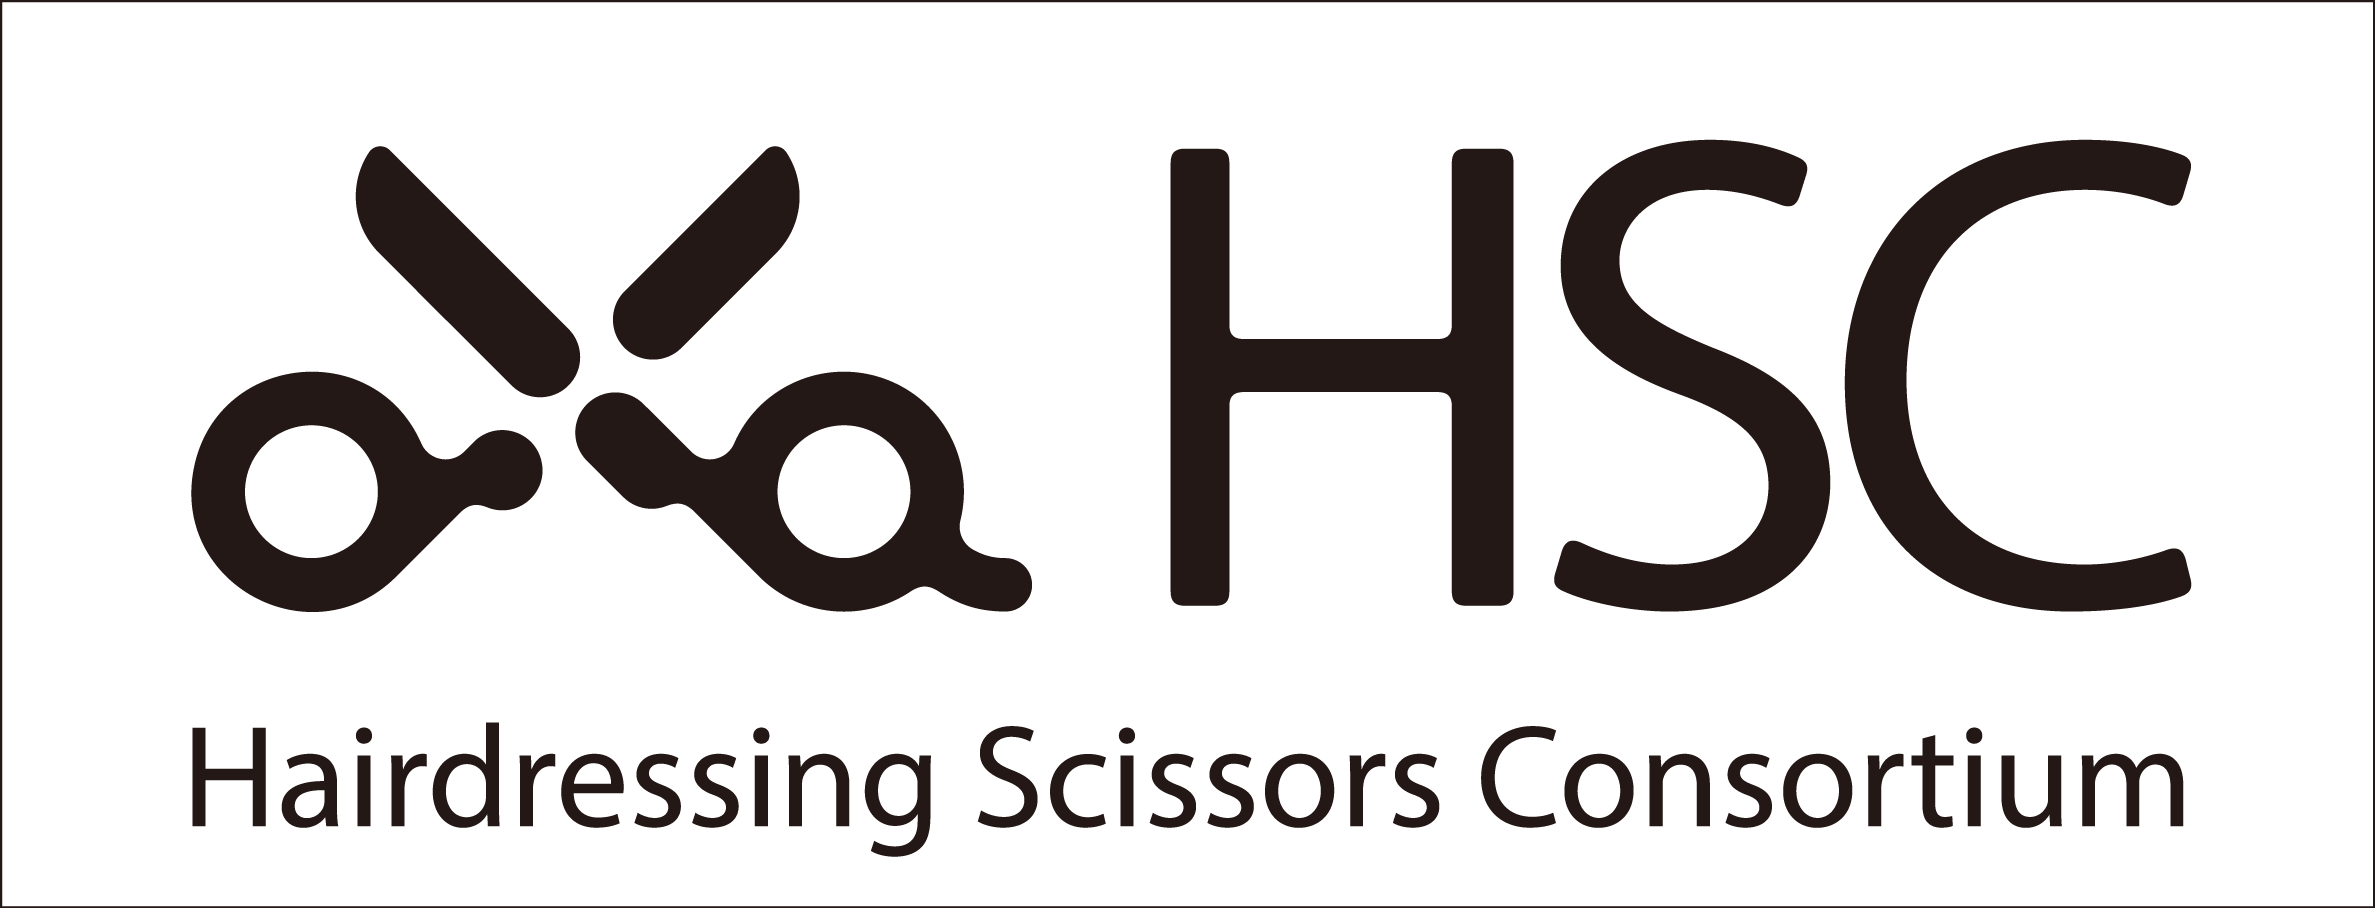 HSC (Hair-dressing Scissors Consortium)